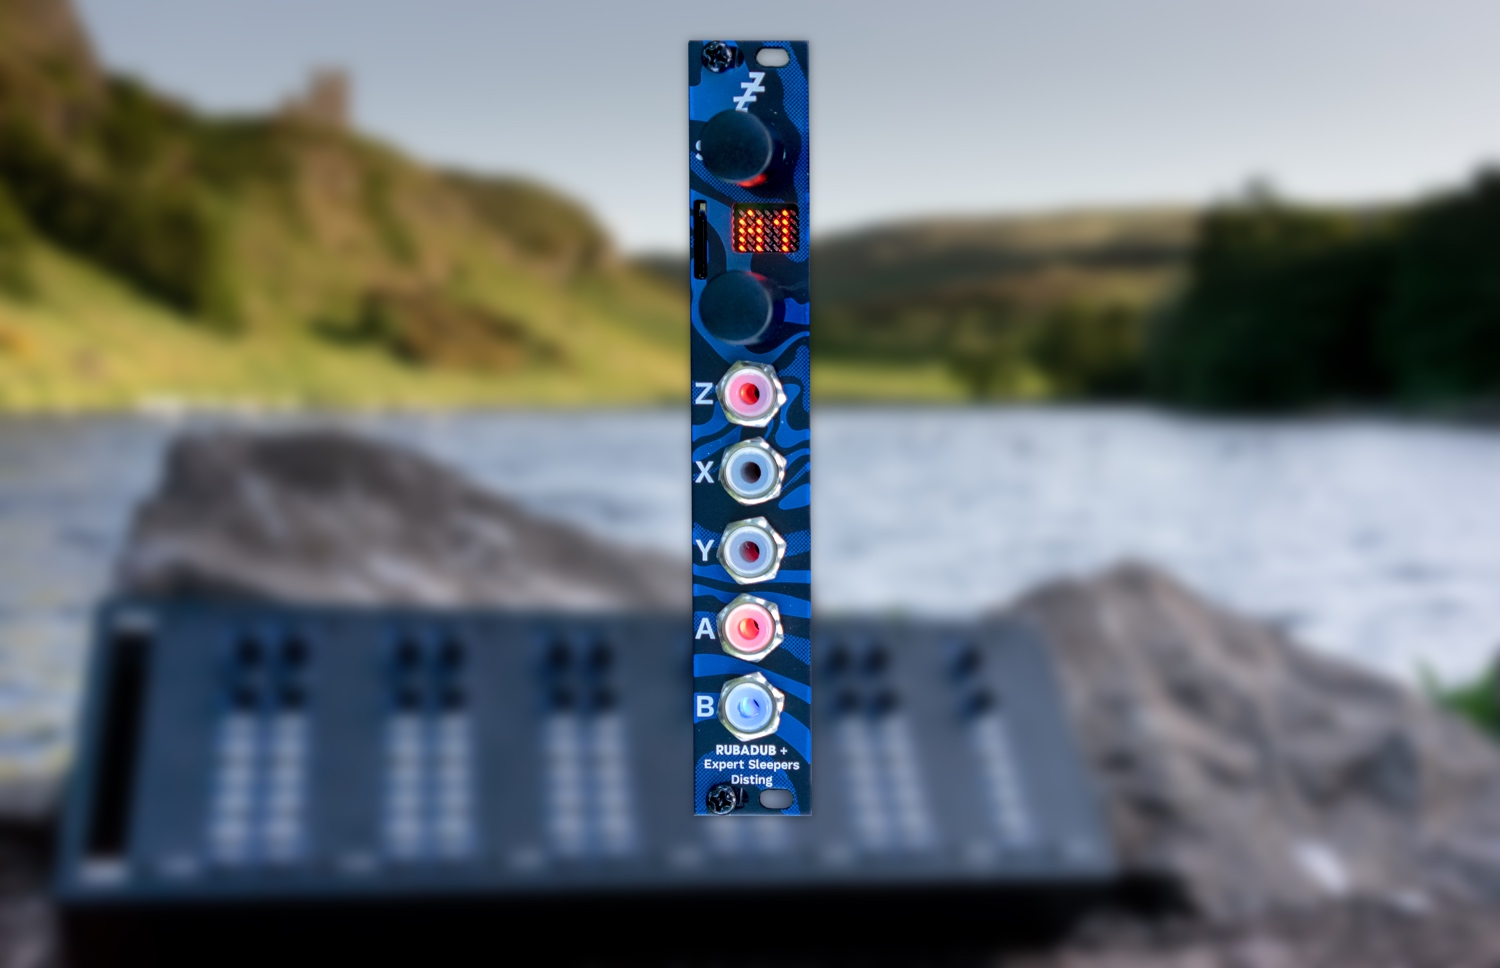 Expert Sleepers and Rubadub team up on Eurorack module inspired by the Scottish highlands